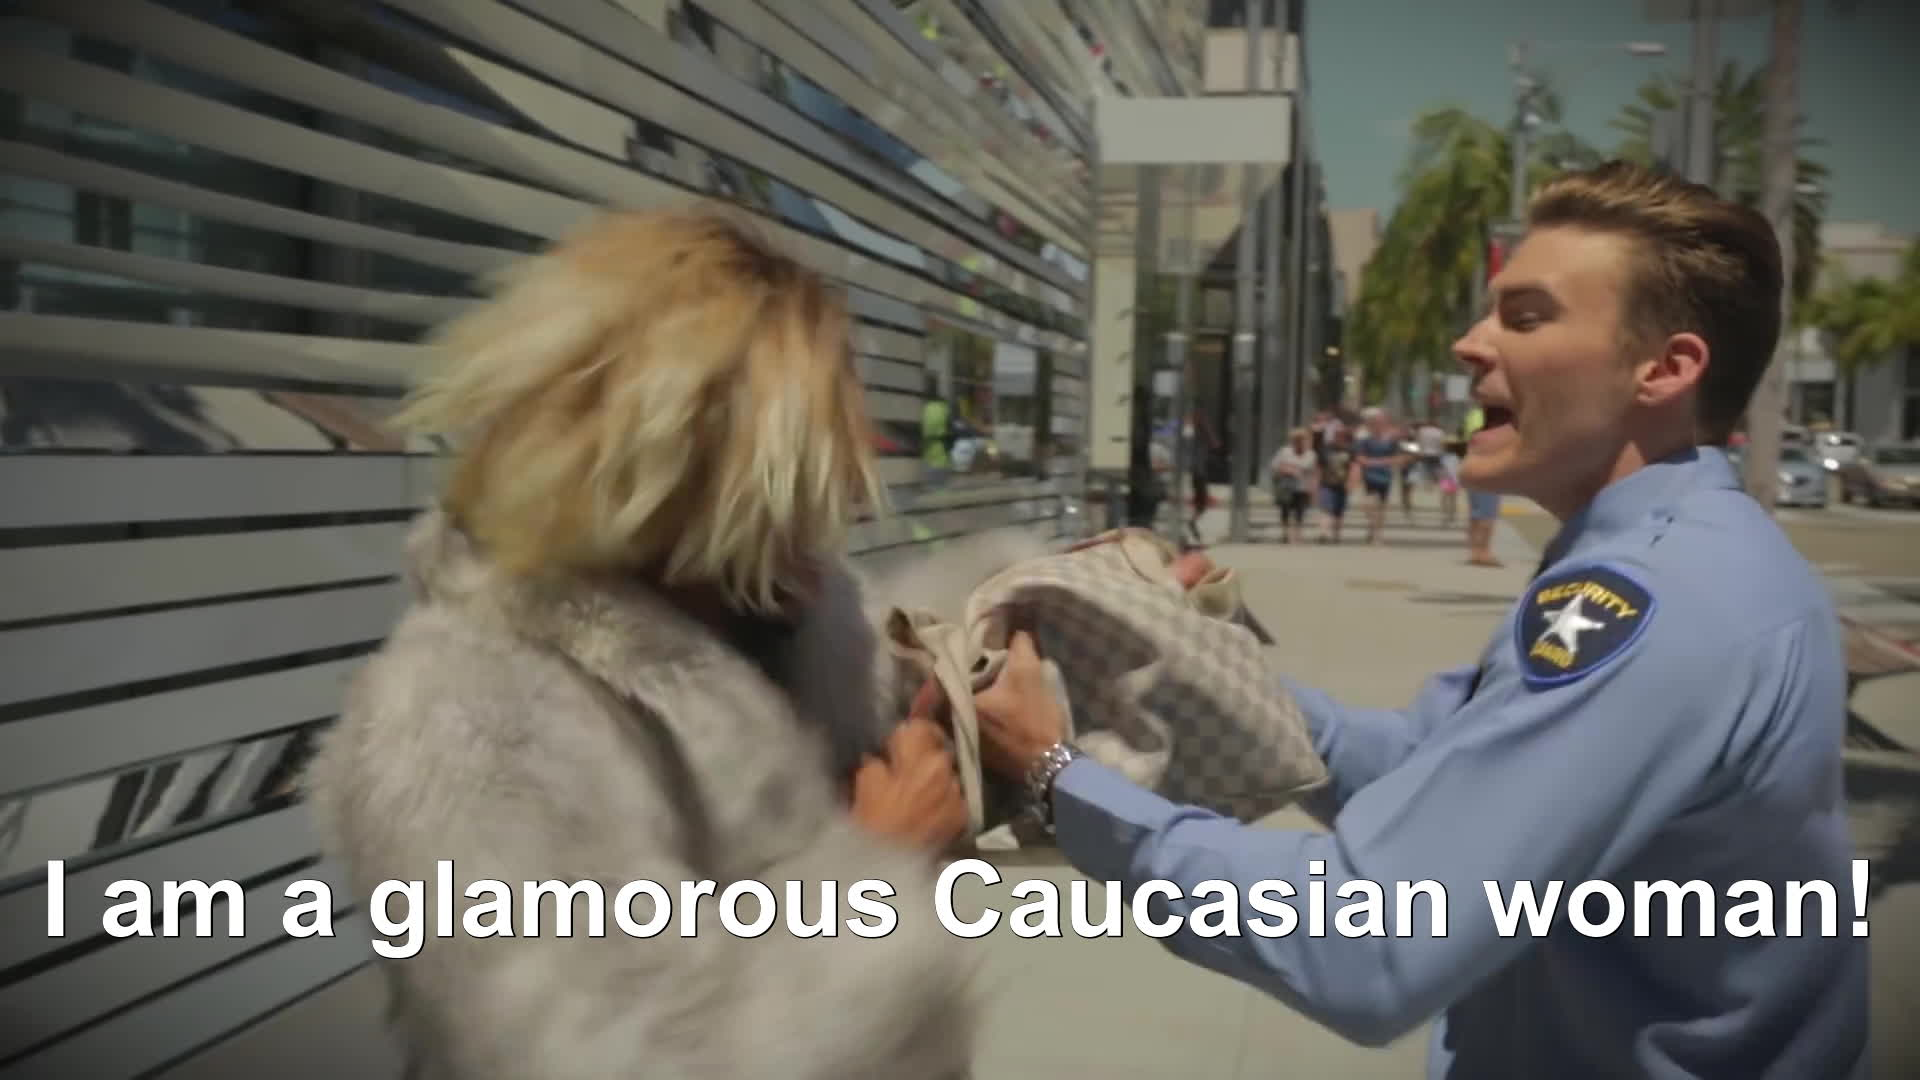 caucasian, diva, dramatic, fighting, glamorous, joanne the scammer, outrage, shoplifting, theft, злая, злой, Joanne The Scammer Scams Beverly Hills GIFs